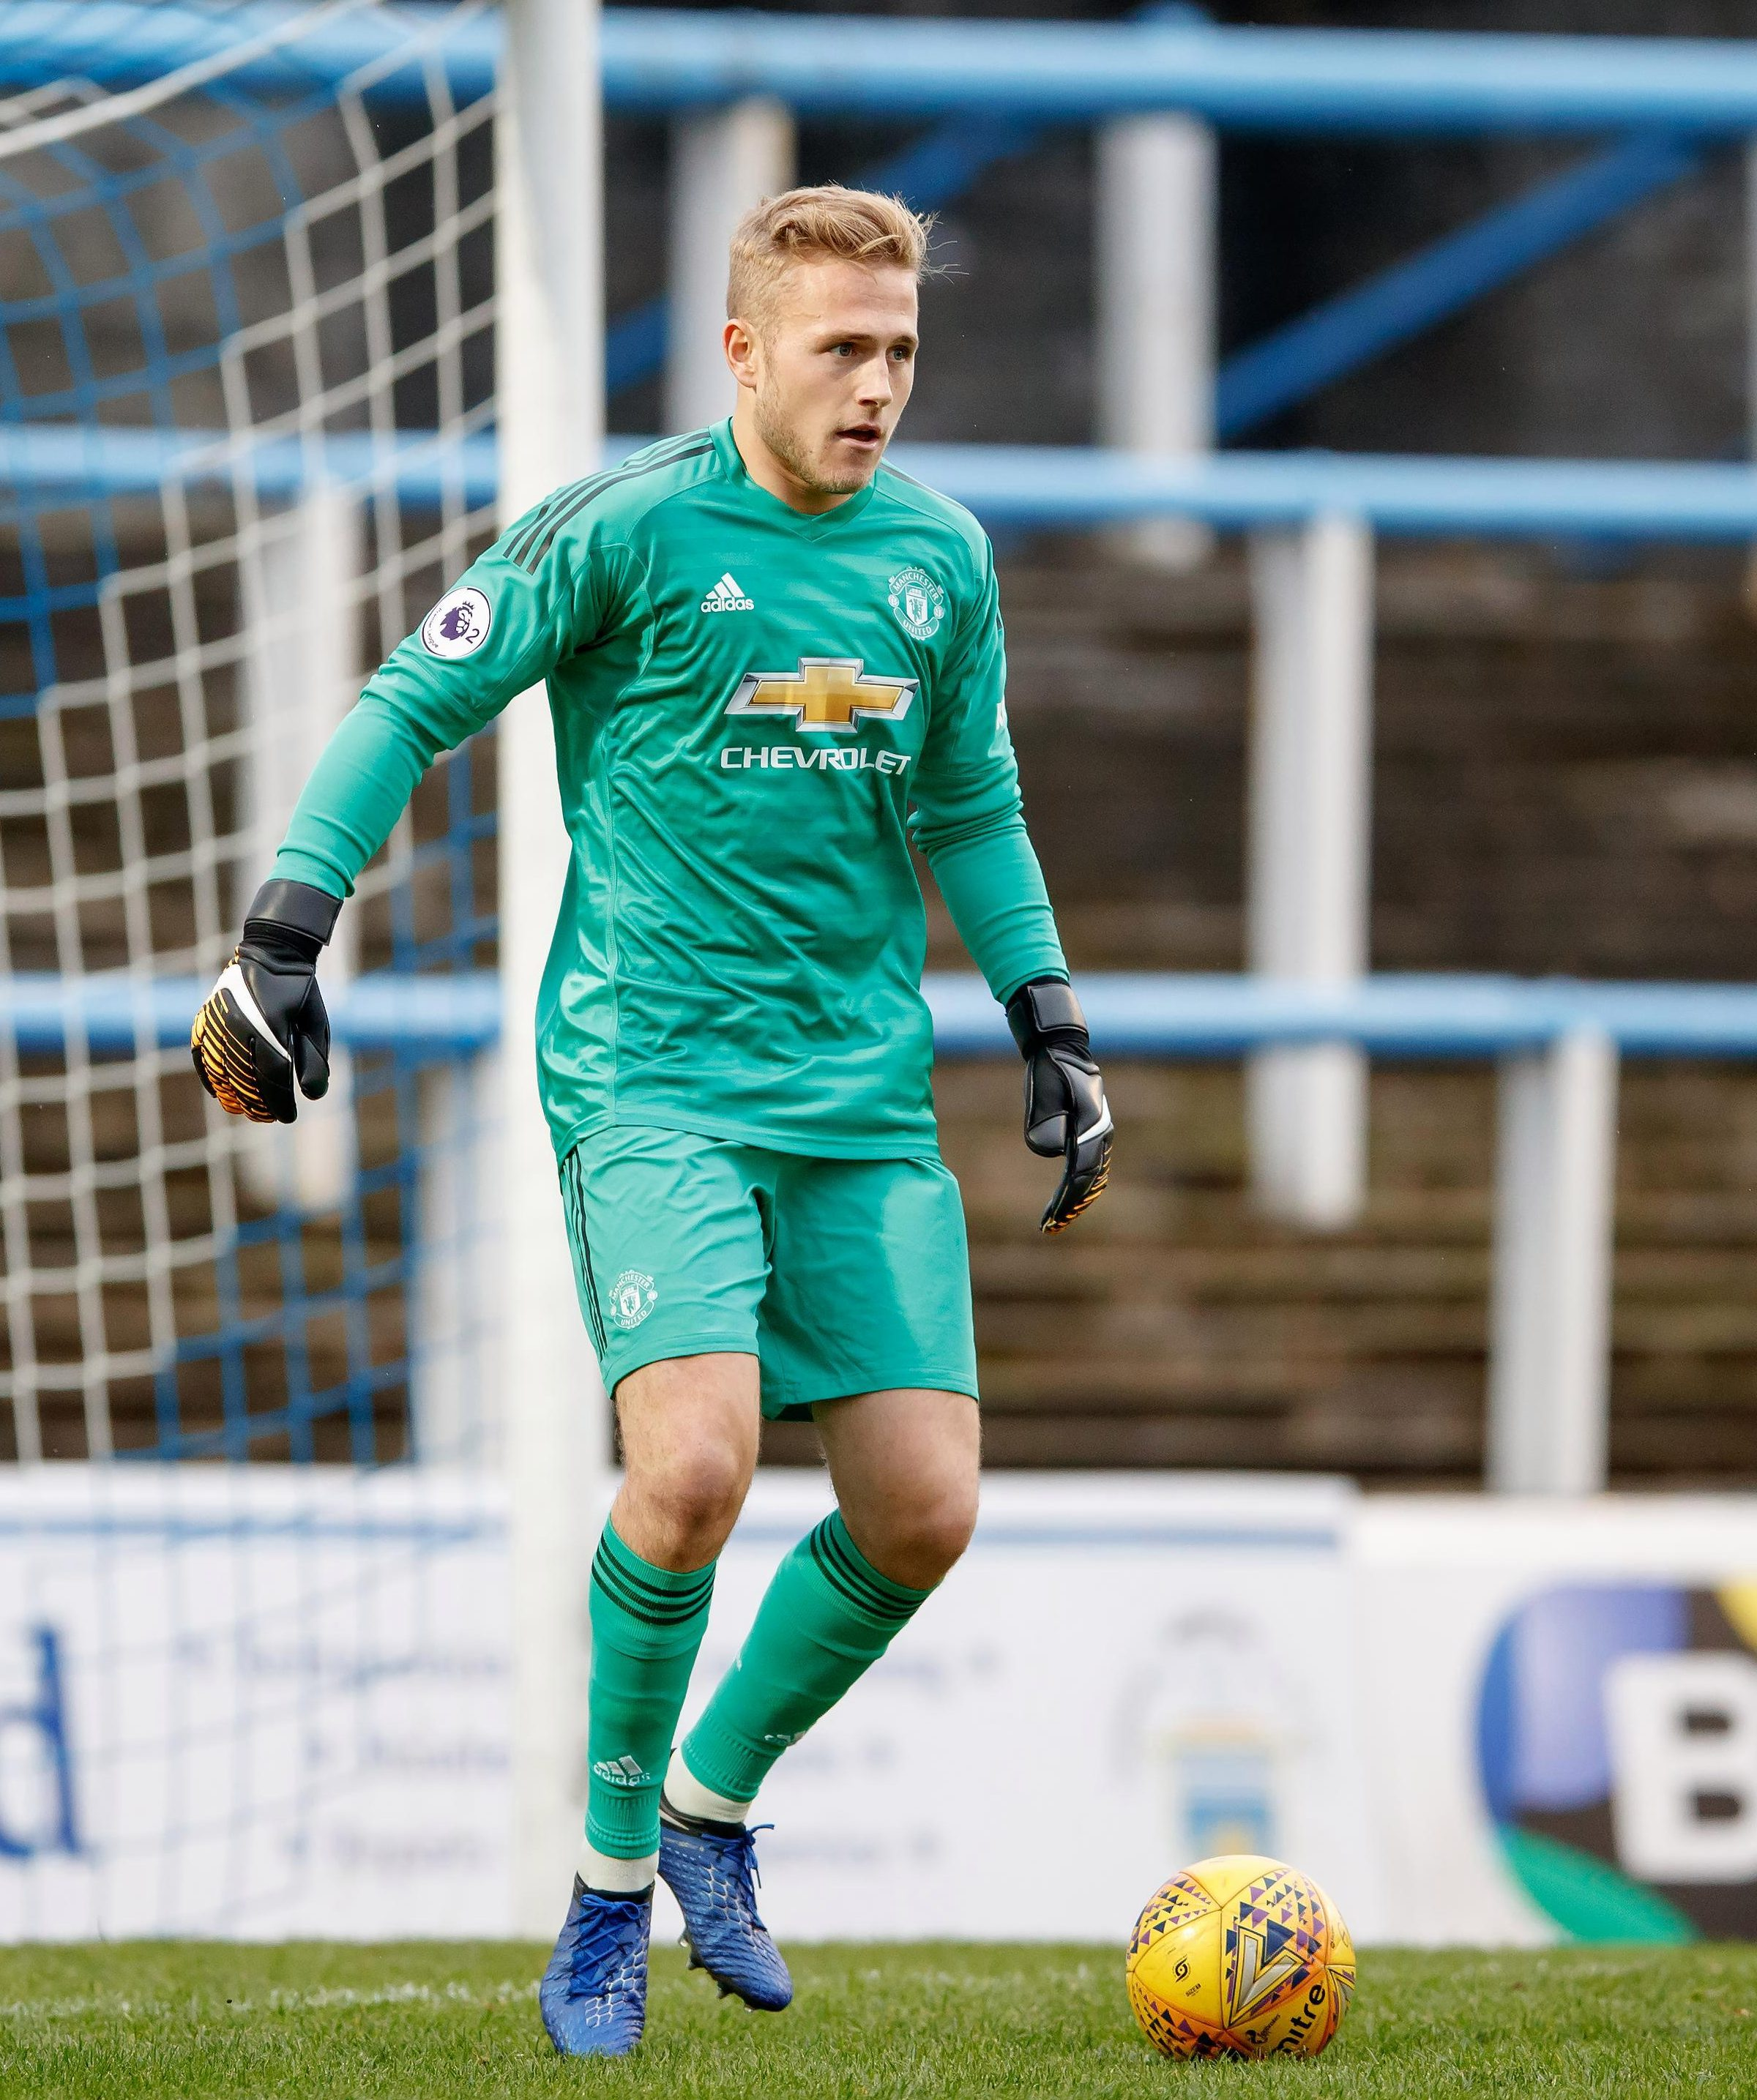 Former England Under-18s keeper Paul Woolston seems likely to be officially confirmed as a Man Utd keeper - after impressing on trial, including in friendlies